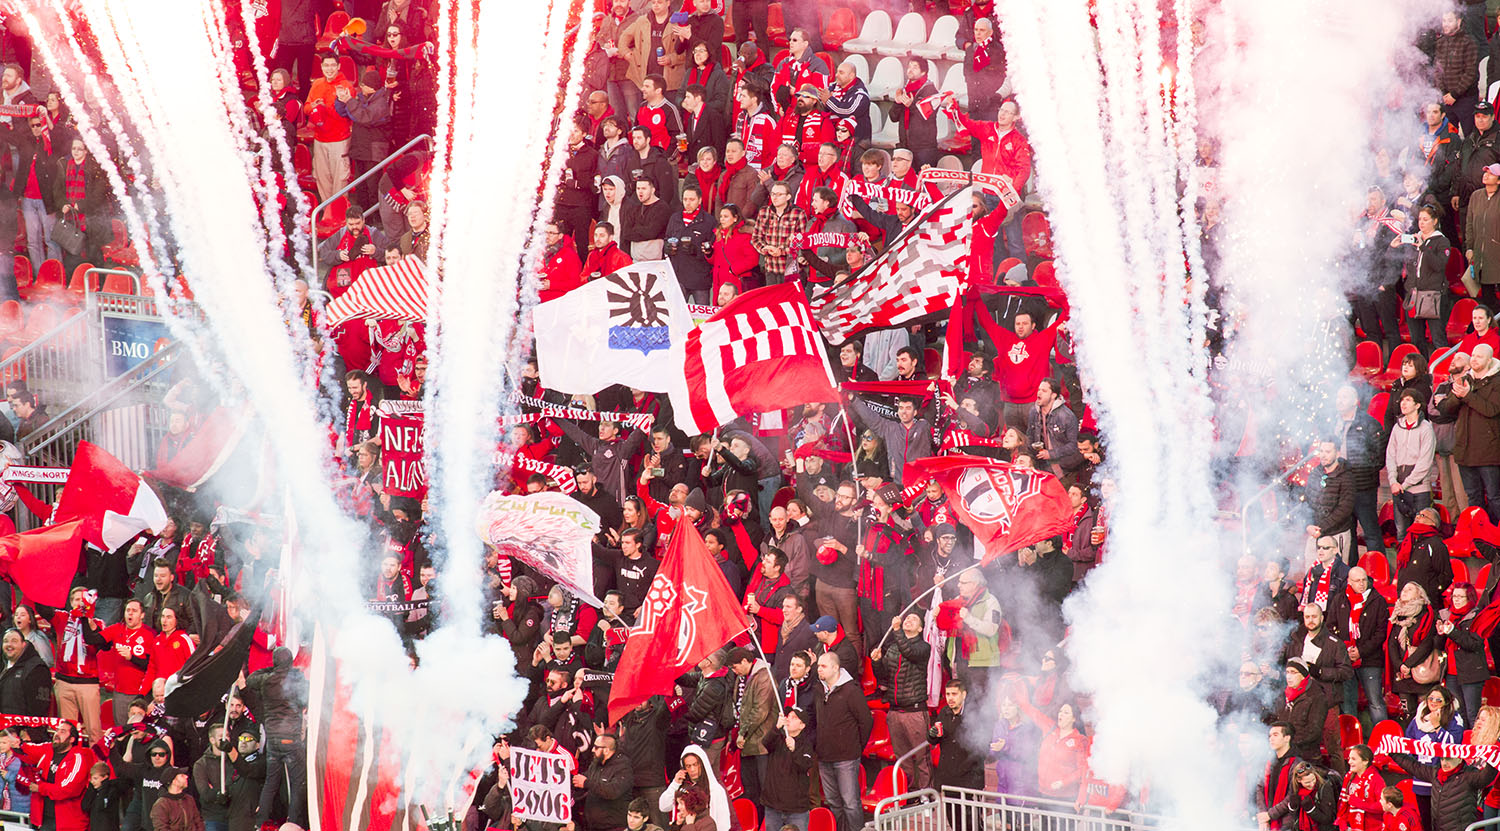 Fireworks shower the South End Supporters section at BMO Field on April 8, 2017. Image by Dennis Marciniak of denMAR Media.